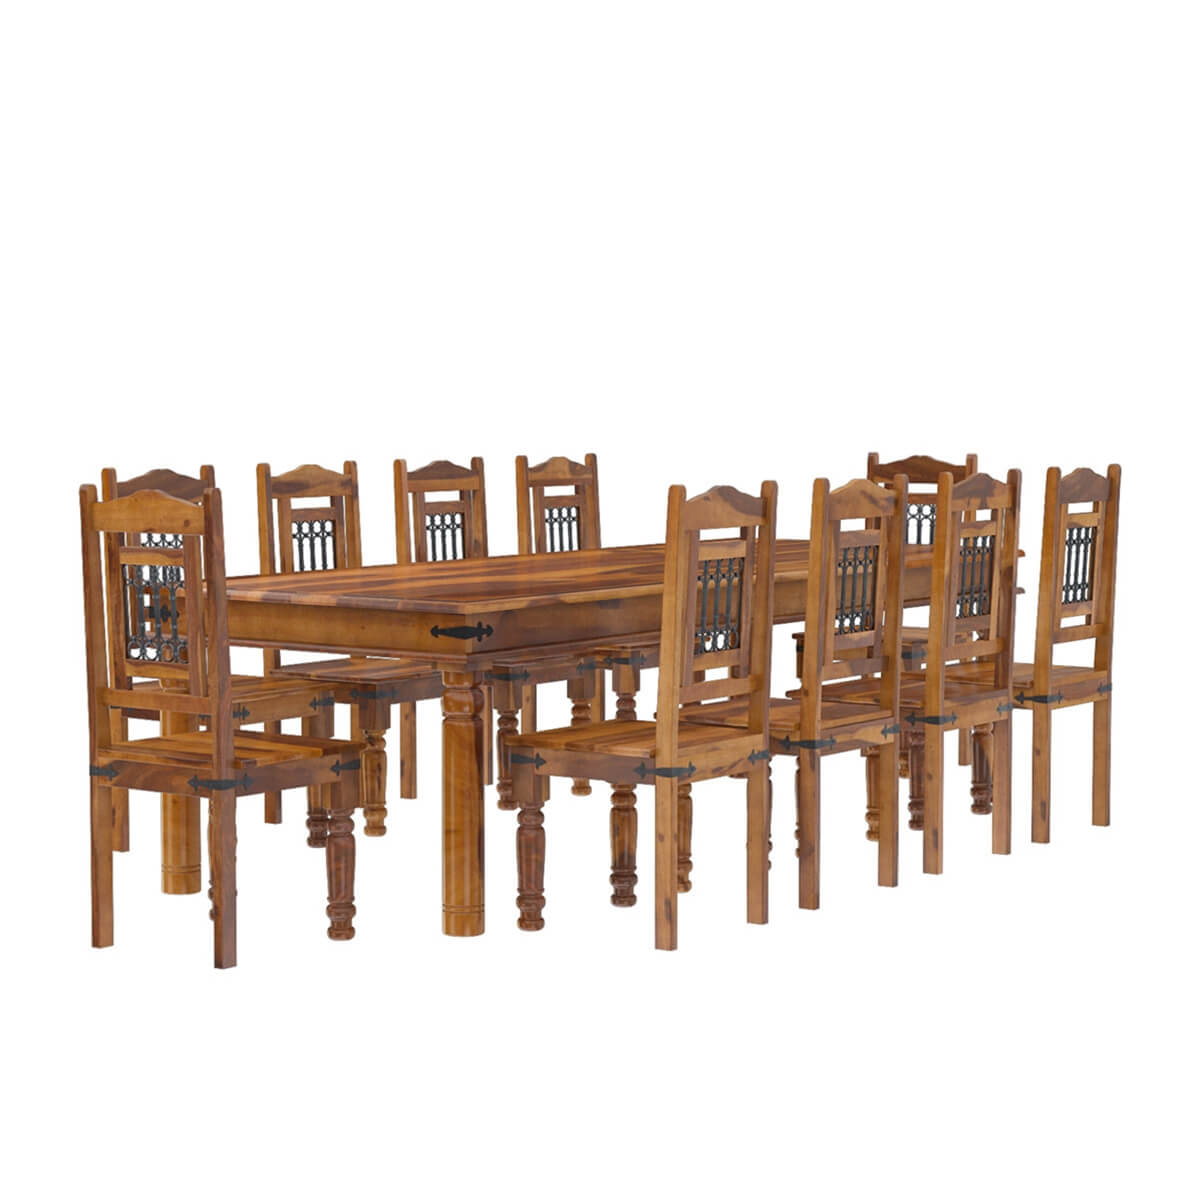 Dining Set For 10: San Francisco Rustic Furniture Large Dining Table With 10